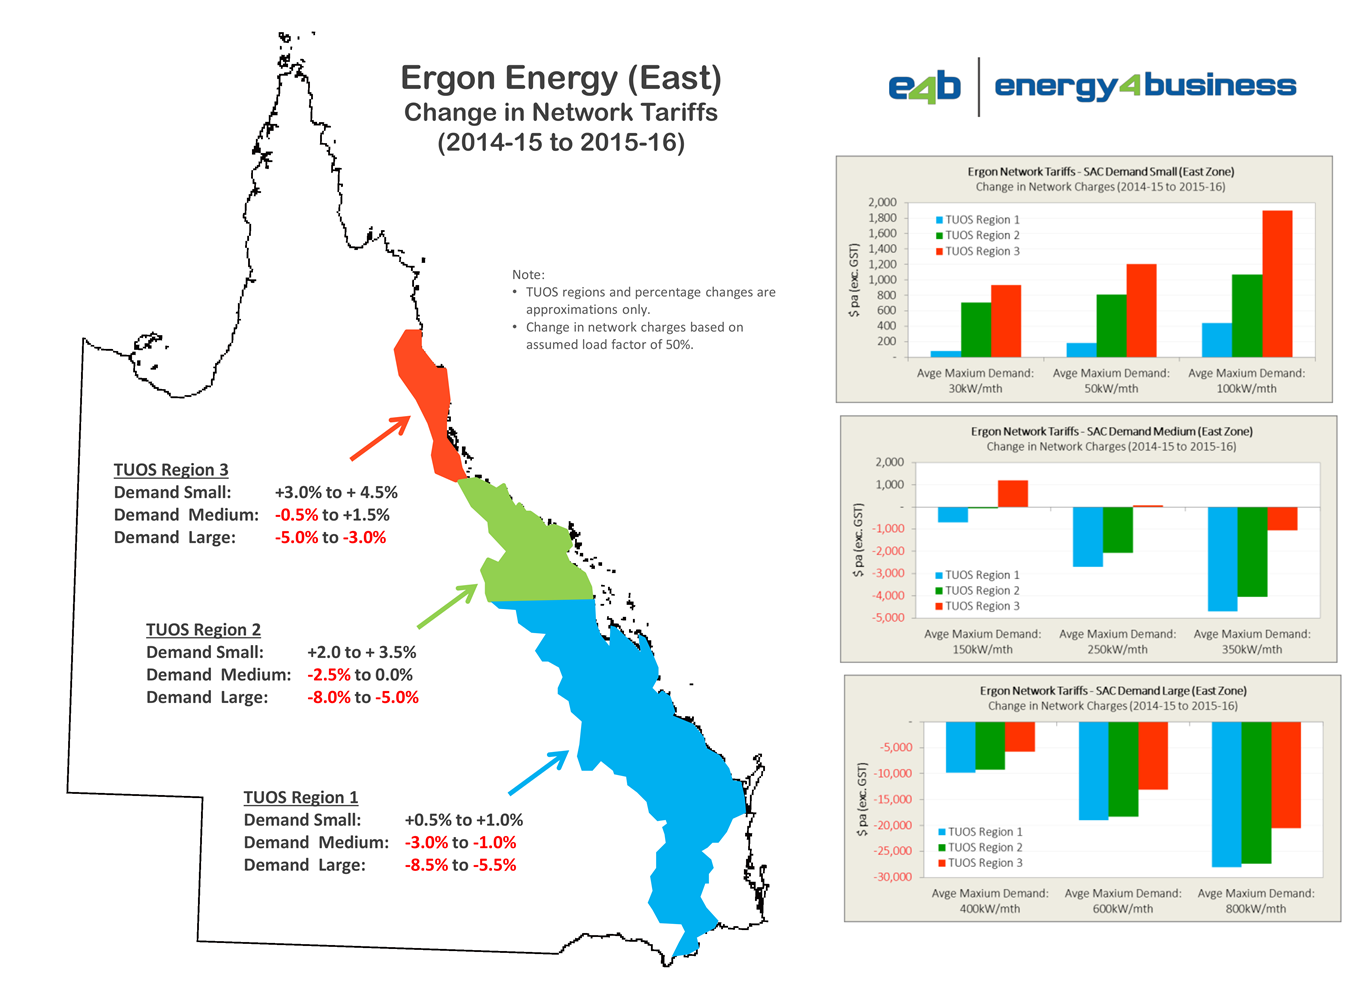 Ergon Network tariffs 2015-16